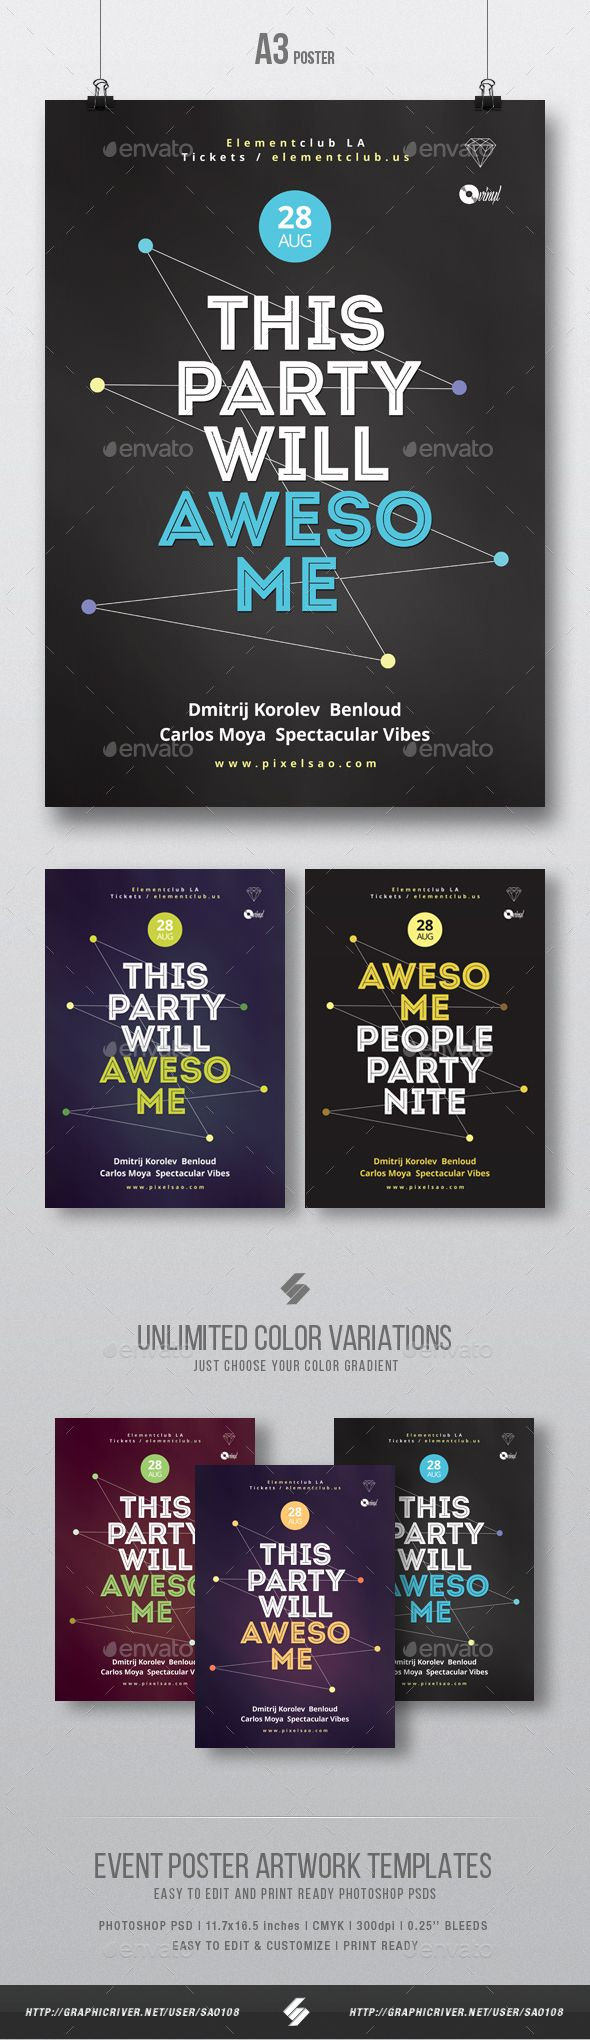 Awesome Party Night Creative Poster / Flyer Template A3 — Photoshop ...